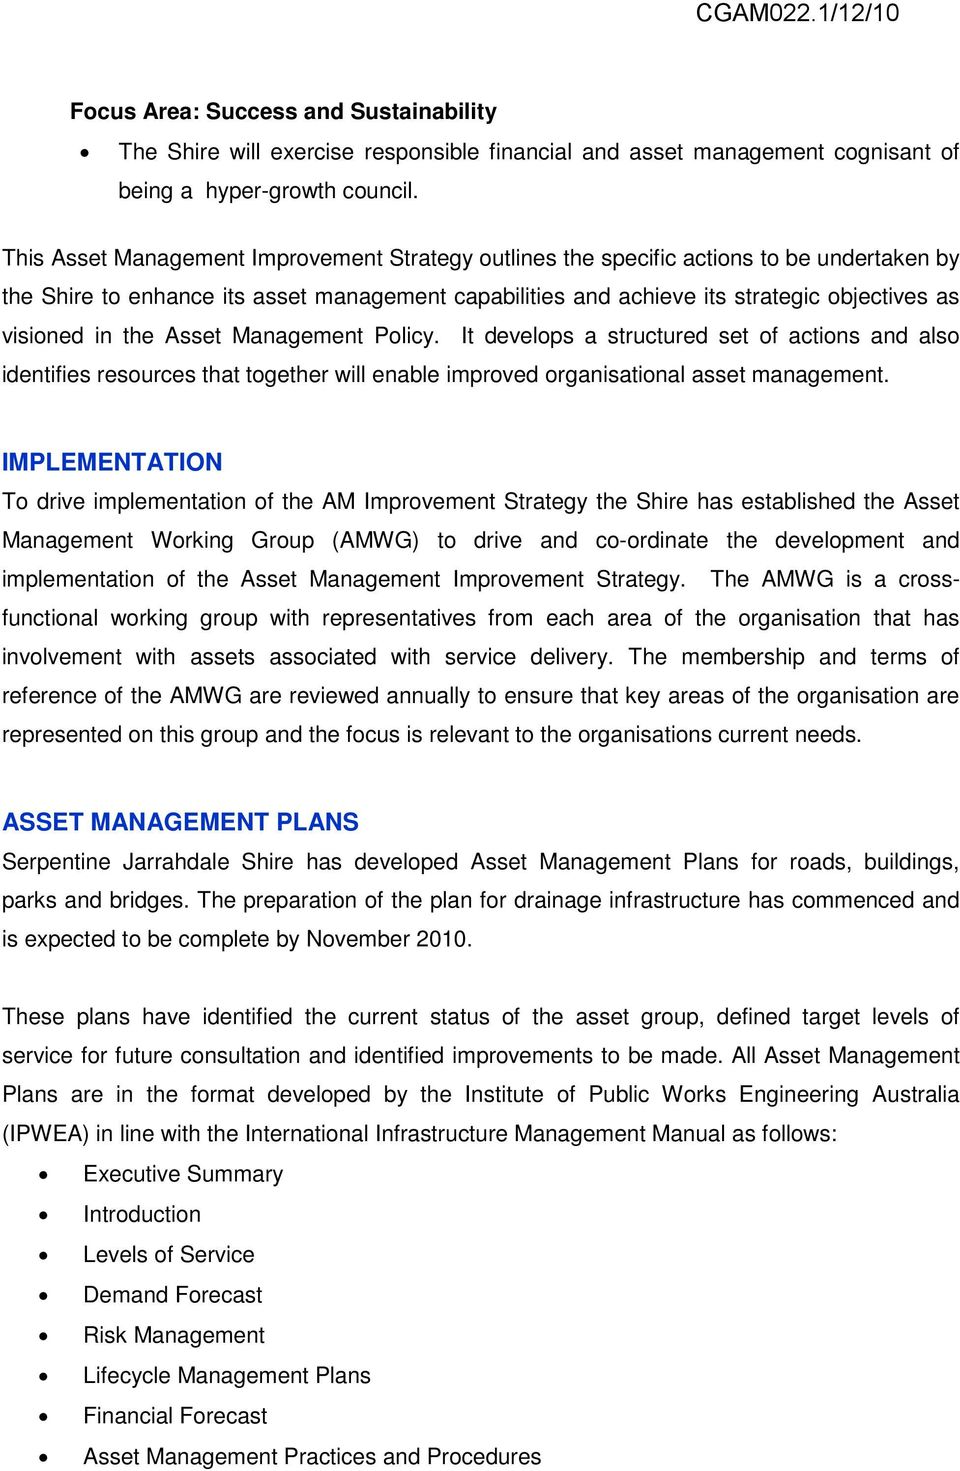 the Asset Management Policy. It develops a structured set of actions and also identifies resources that together will enable improved organisational asset management.